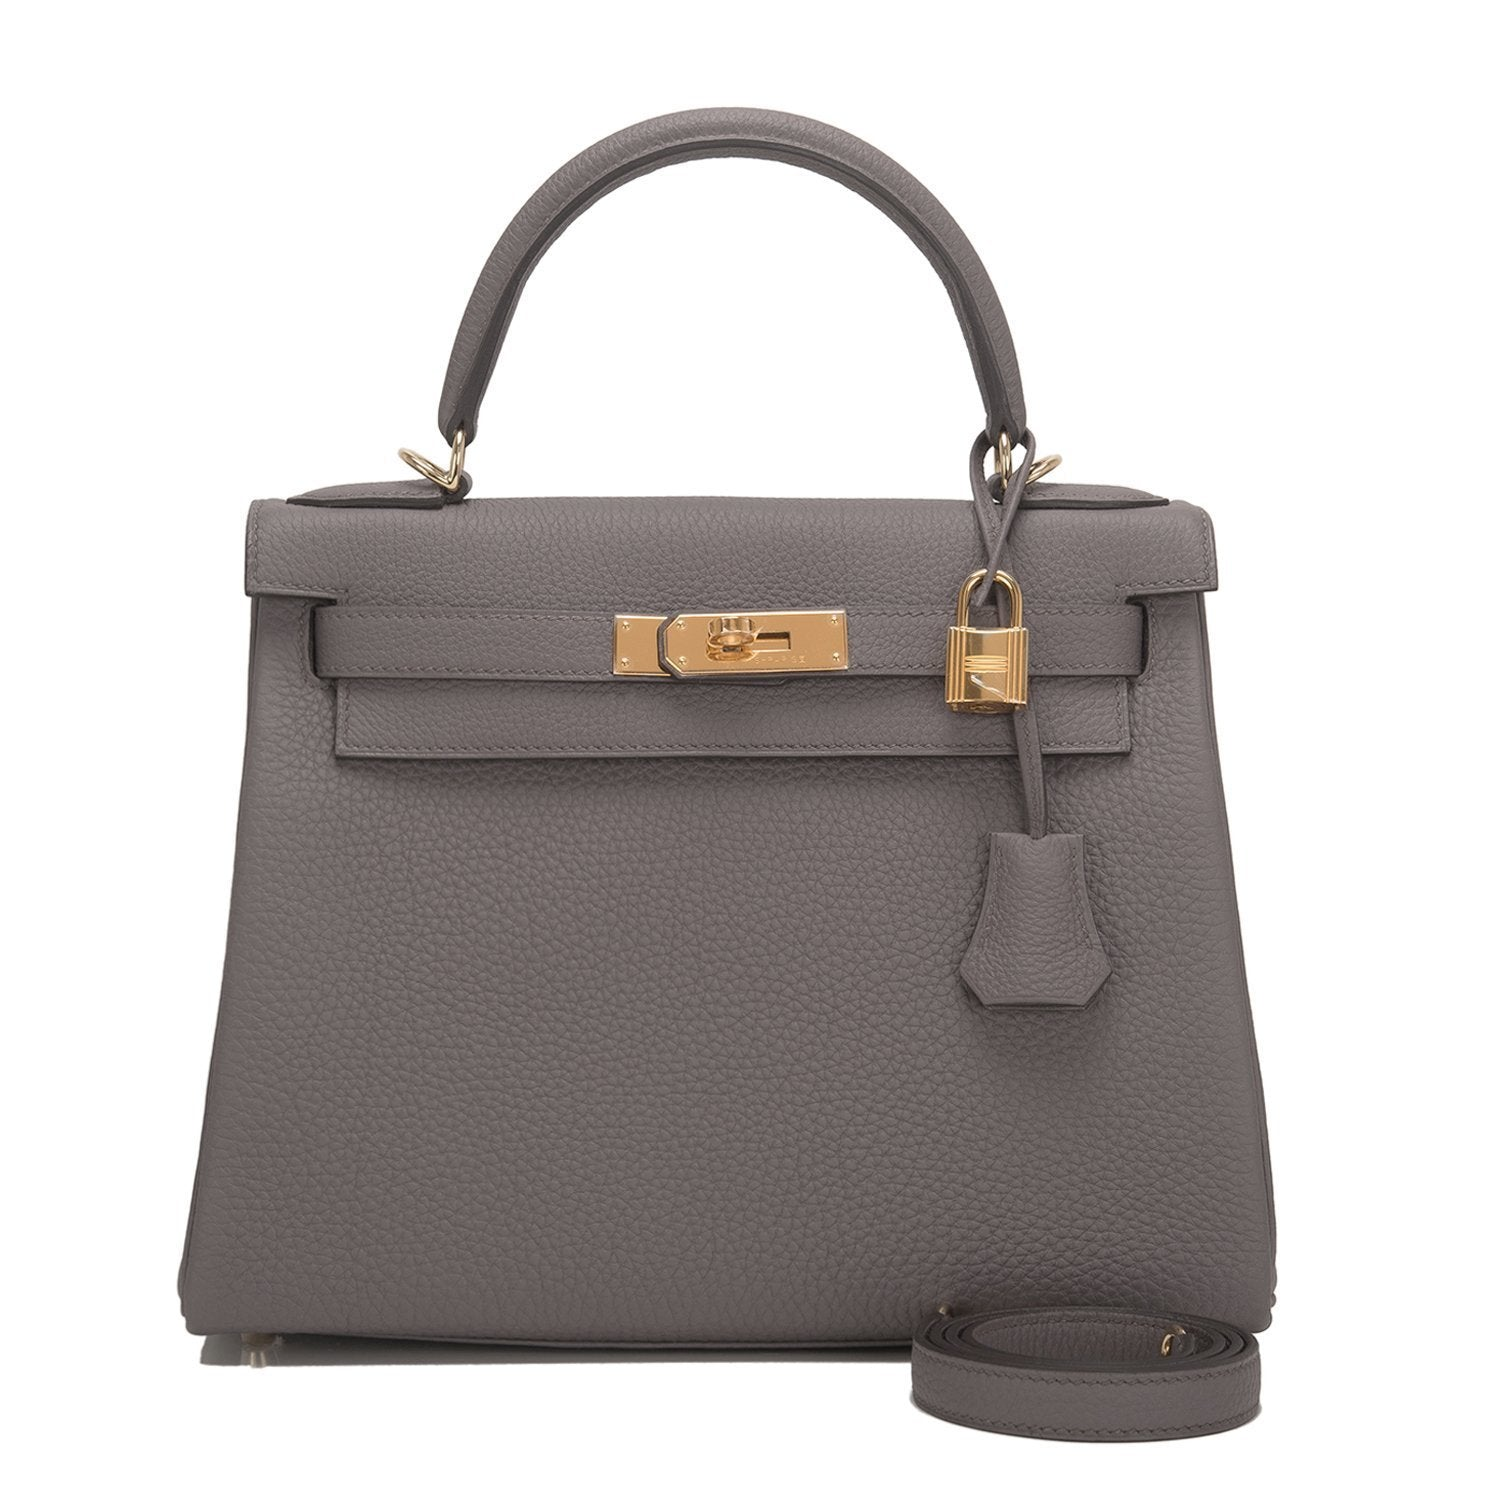 Hermes Etain Togo Kelly 28Cm Gold Hardware Handbags